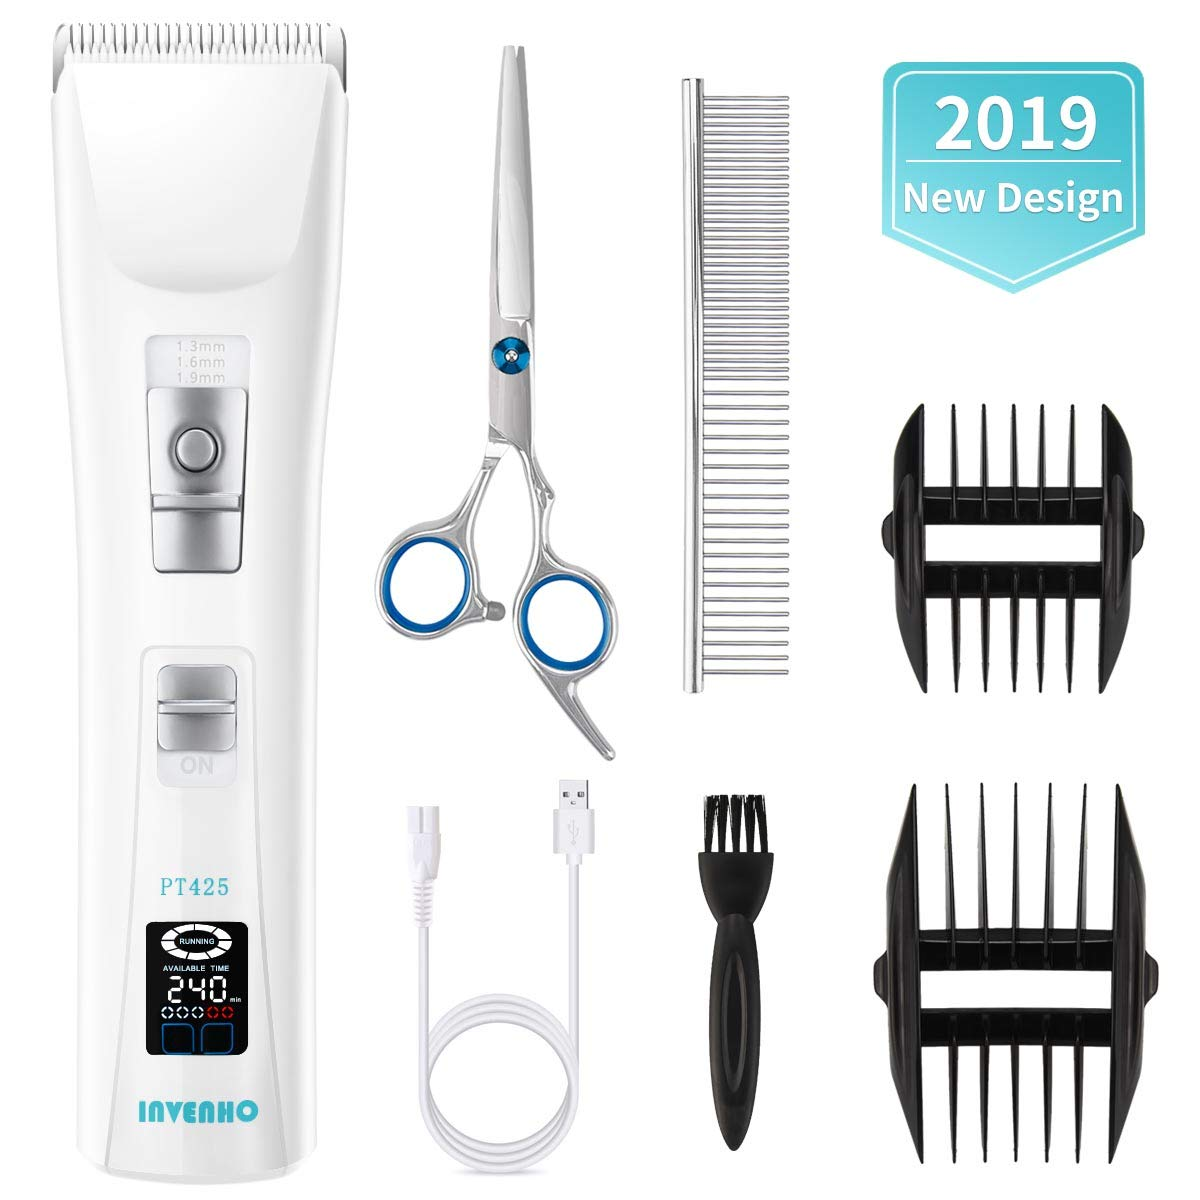 INVENHO DogHair Clippers - Rechargeable CordlessLow Noise Super Power Professional Pet Grooming Trimmers Kit, for Small Media Large Dog Cat